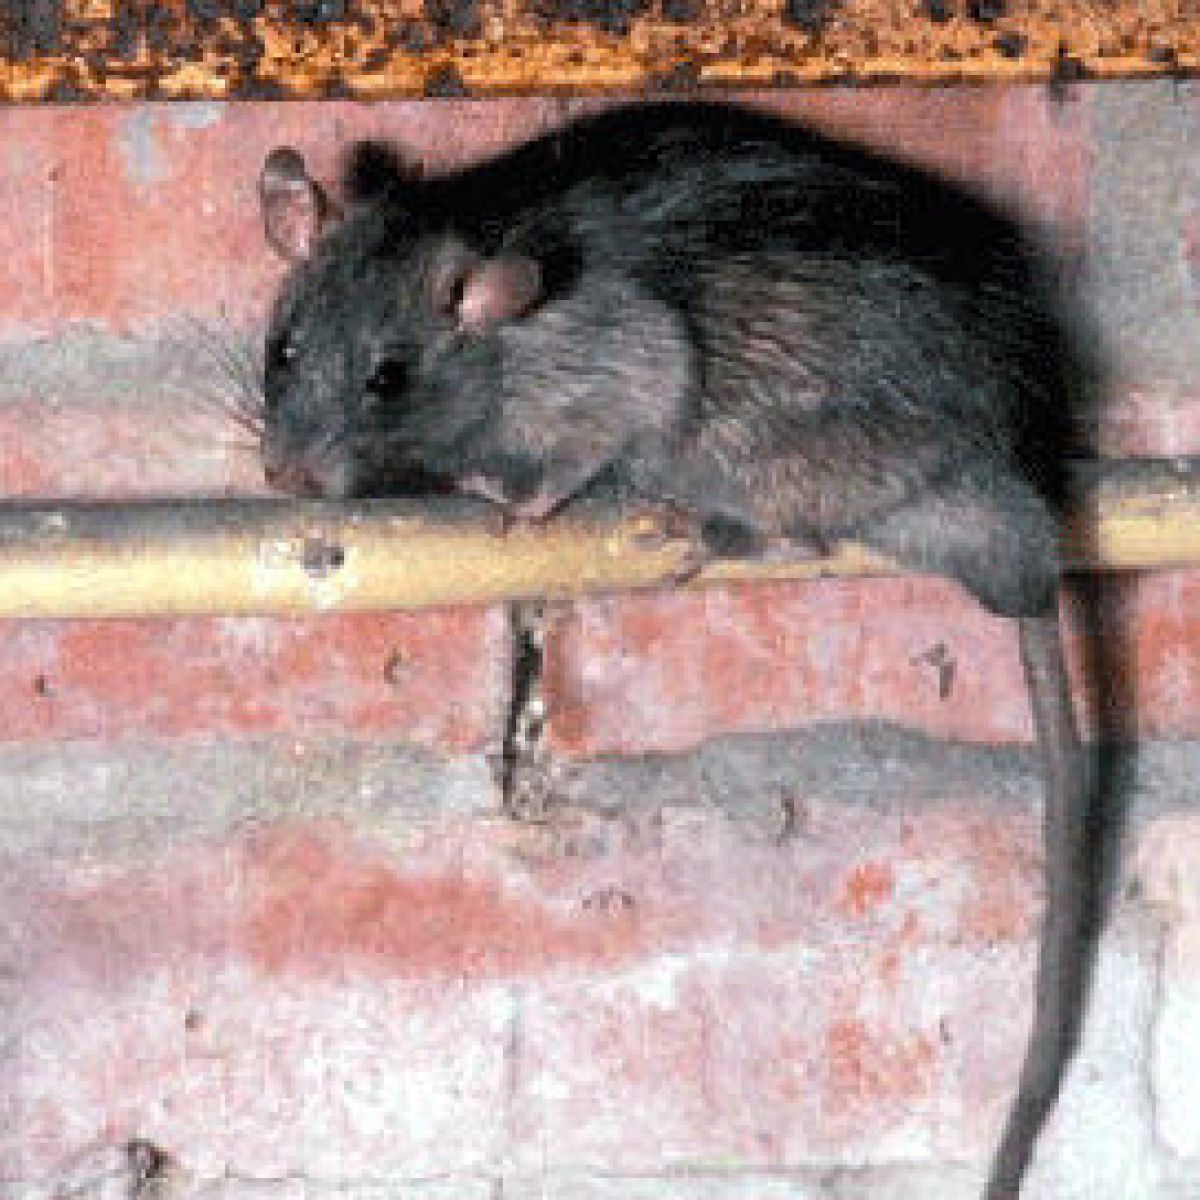 New Orleans rats are carrying pathogens that could be fatal to ...